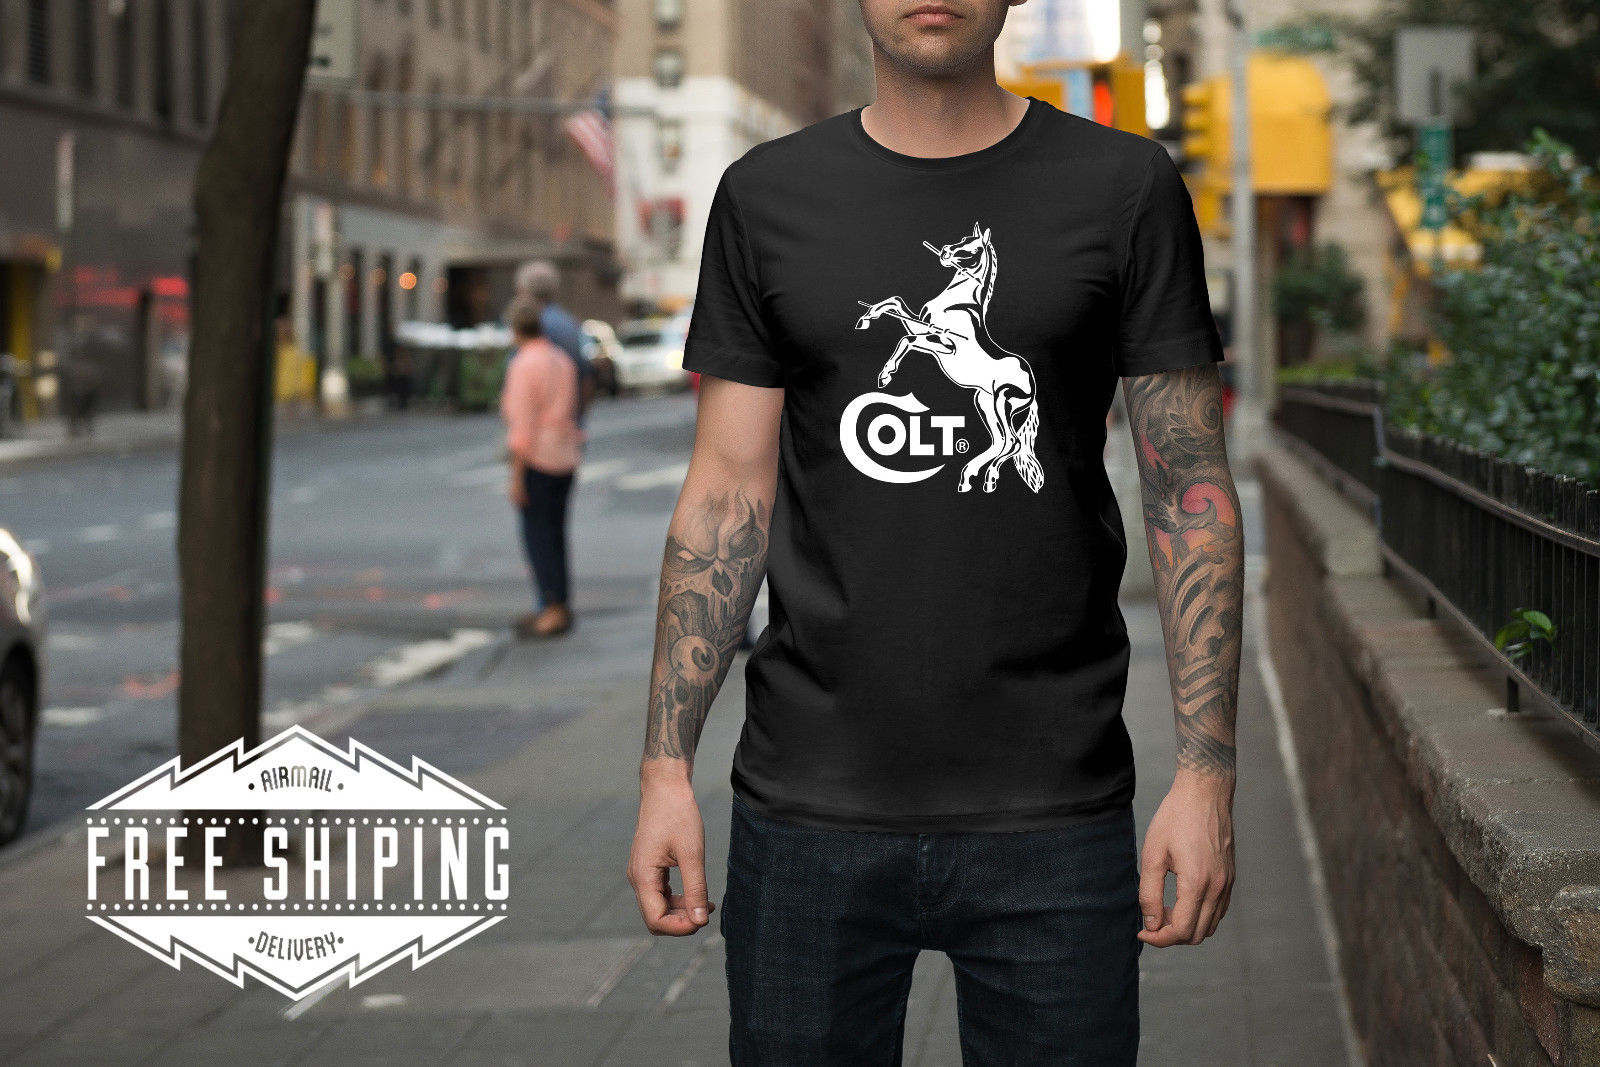 487a071cc3a Buy colt tee shirts and get free shipping on AliExpress.com